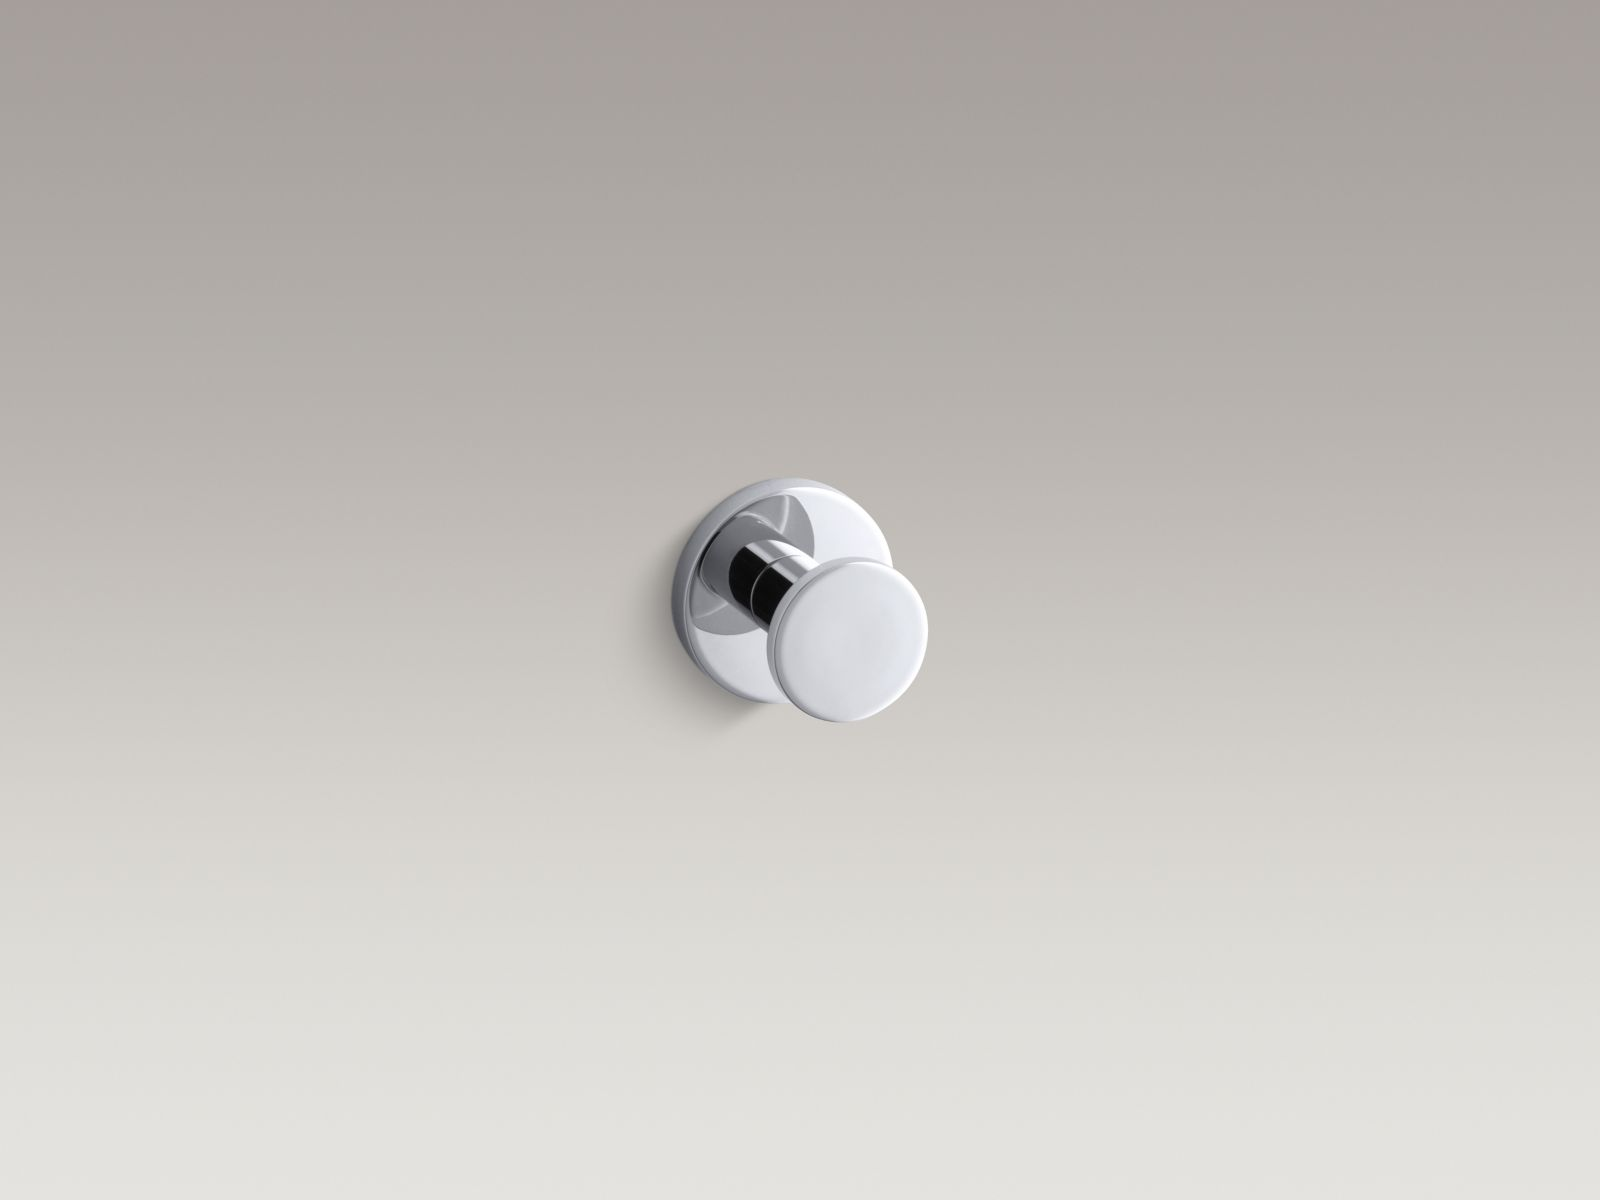 Kohler K-14458-CP Stillness Robe Hook Polished Chrome